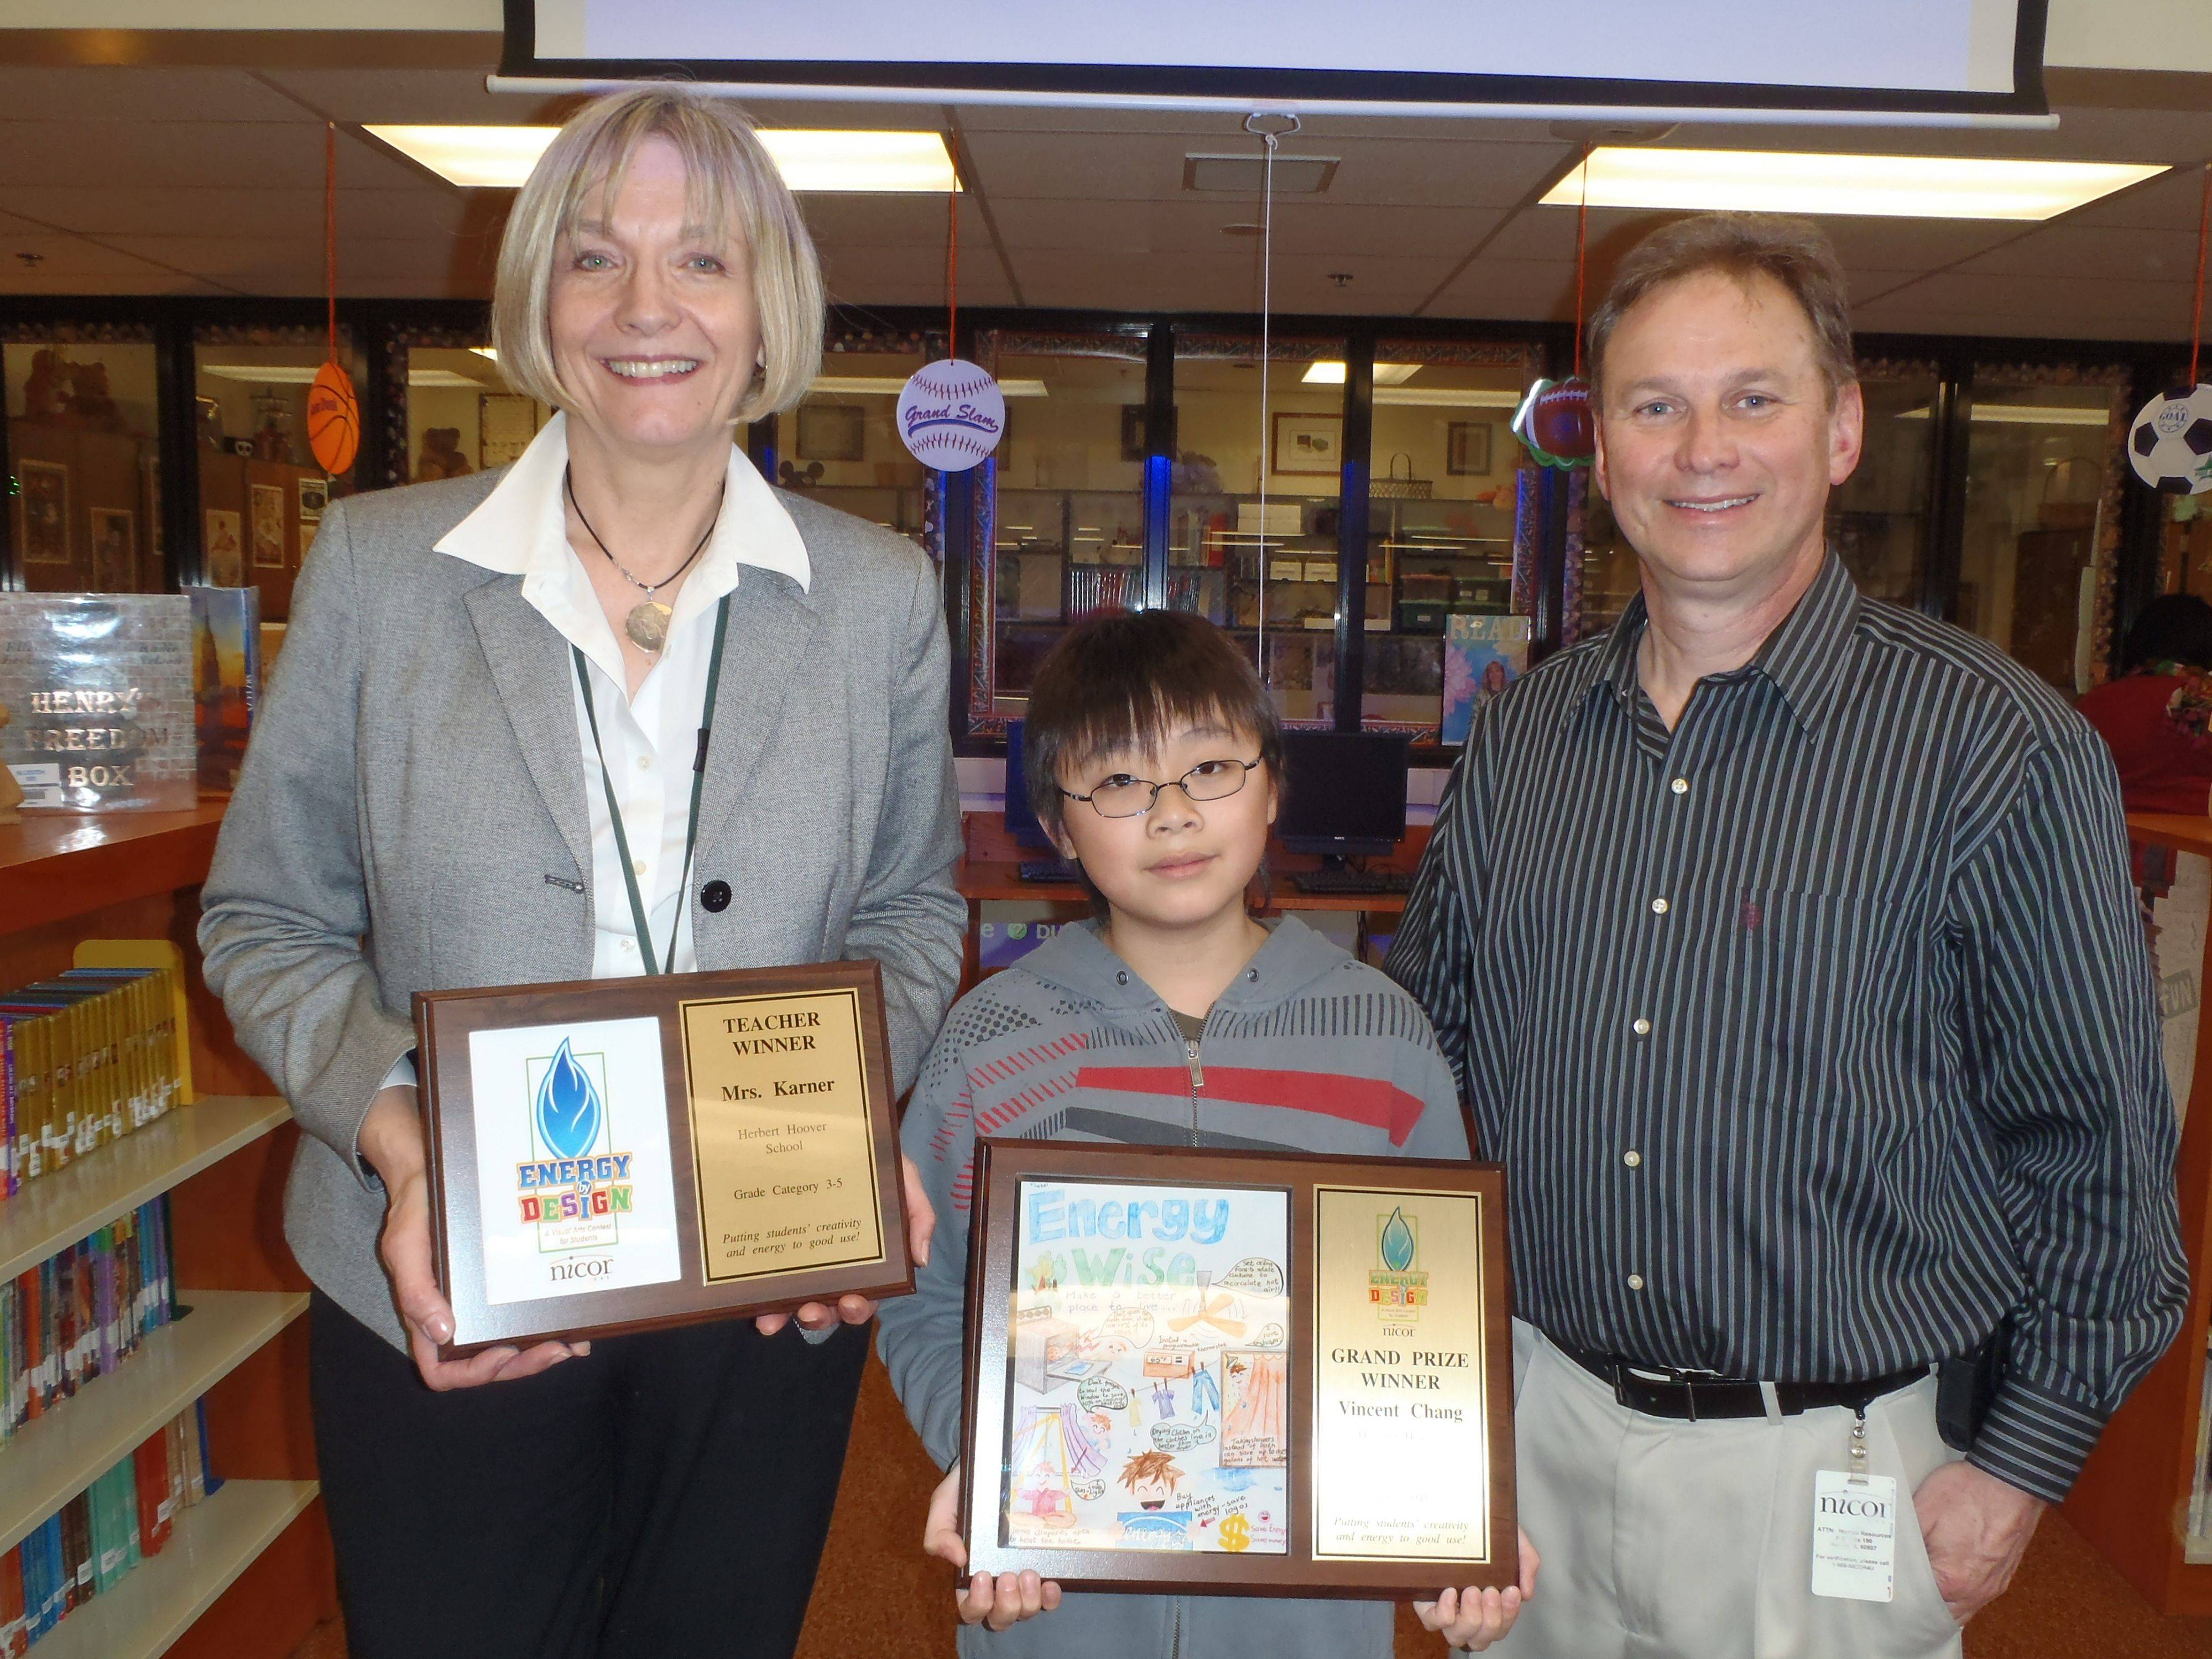 Pictured, from left, Rose Garner, Herbert Hoover School fifth grade teacher; Vincent Chang, Grand Prize winner, fifth-grade student; and Jim Tansor, senior community relations director for Nicor Gas.